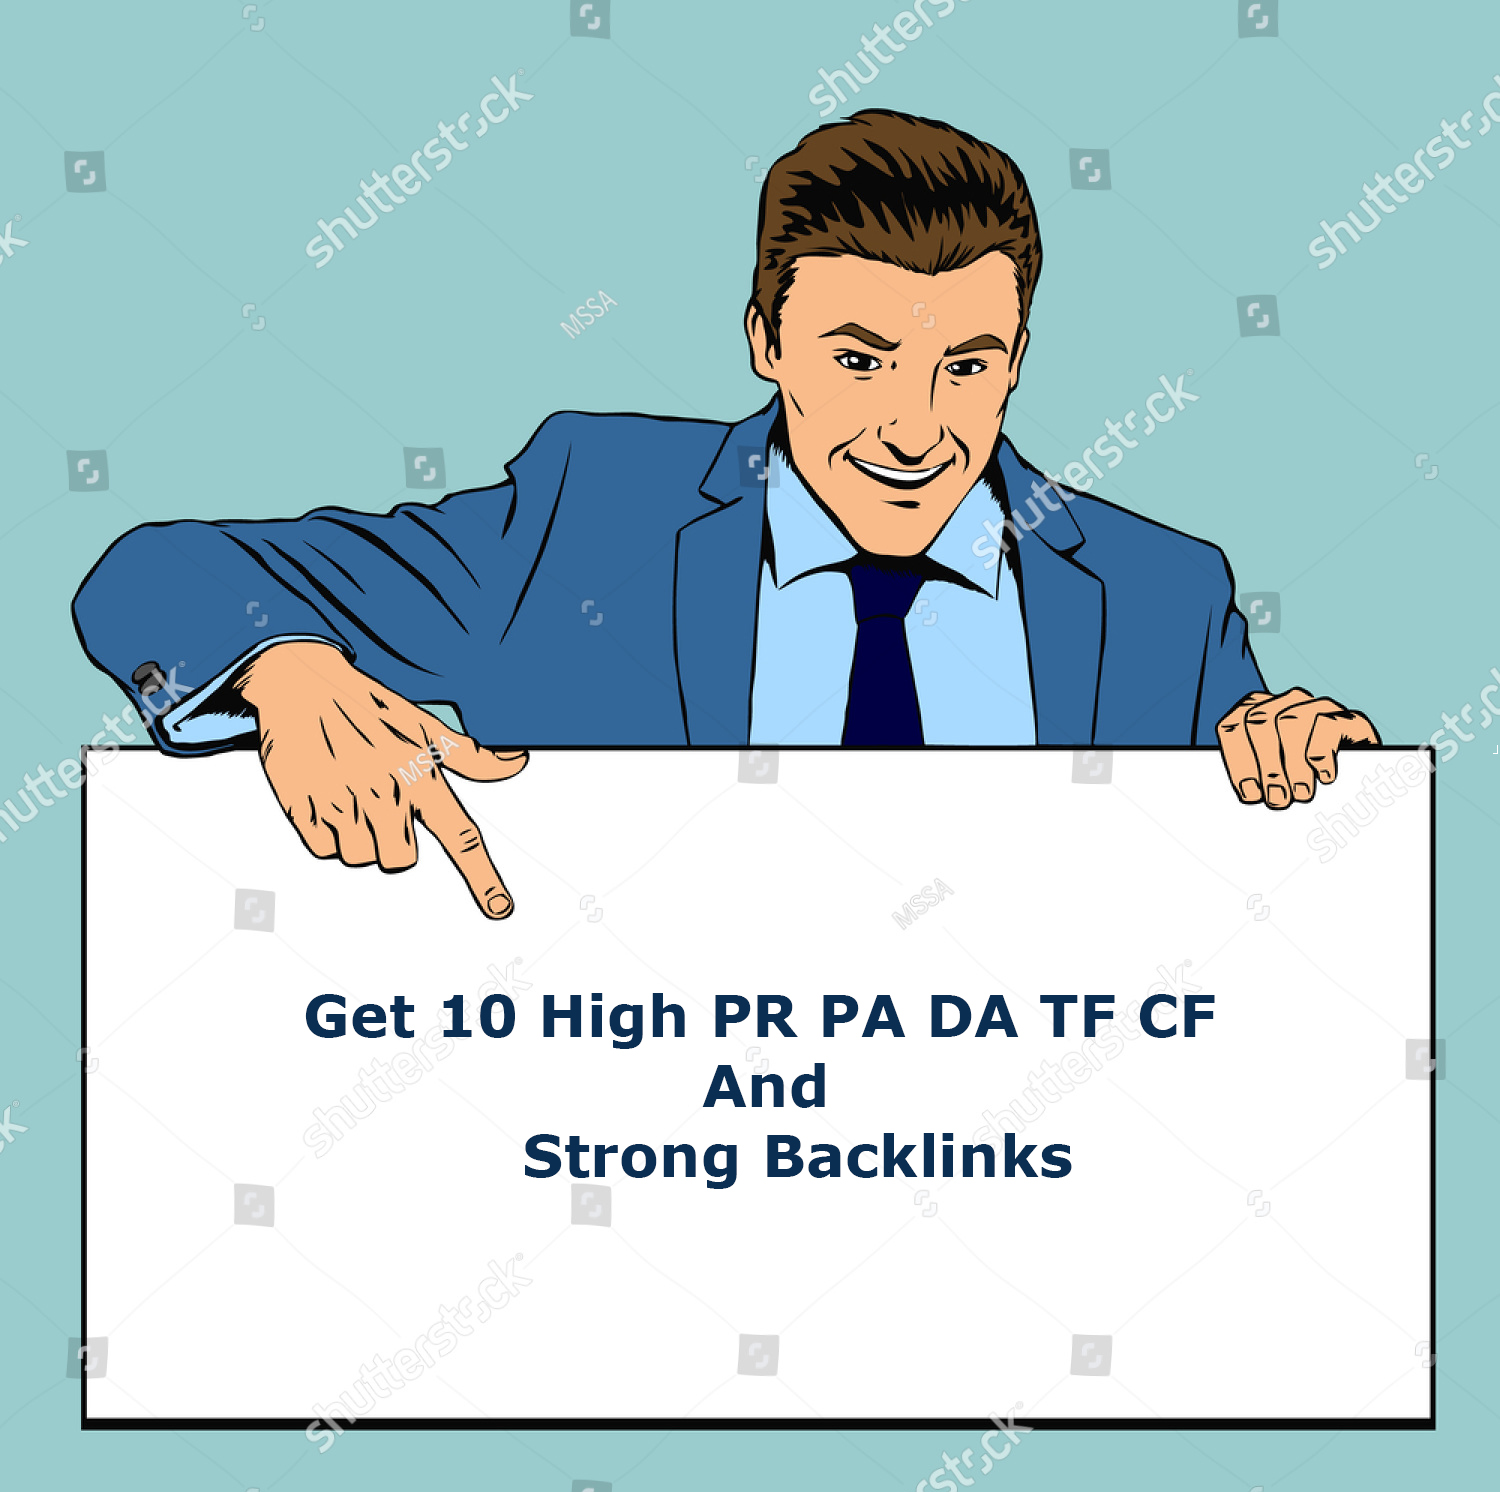 Bust up Your Website Get High PR PA DA TF CF, & Strong Backlinks